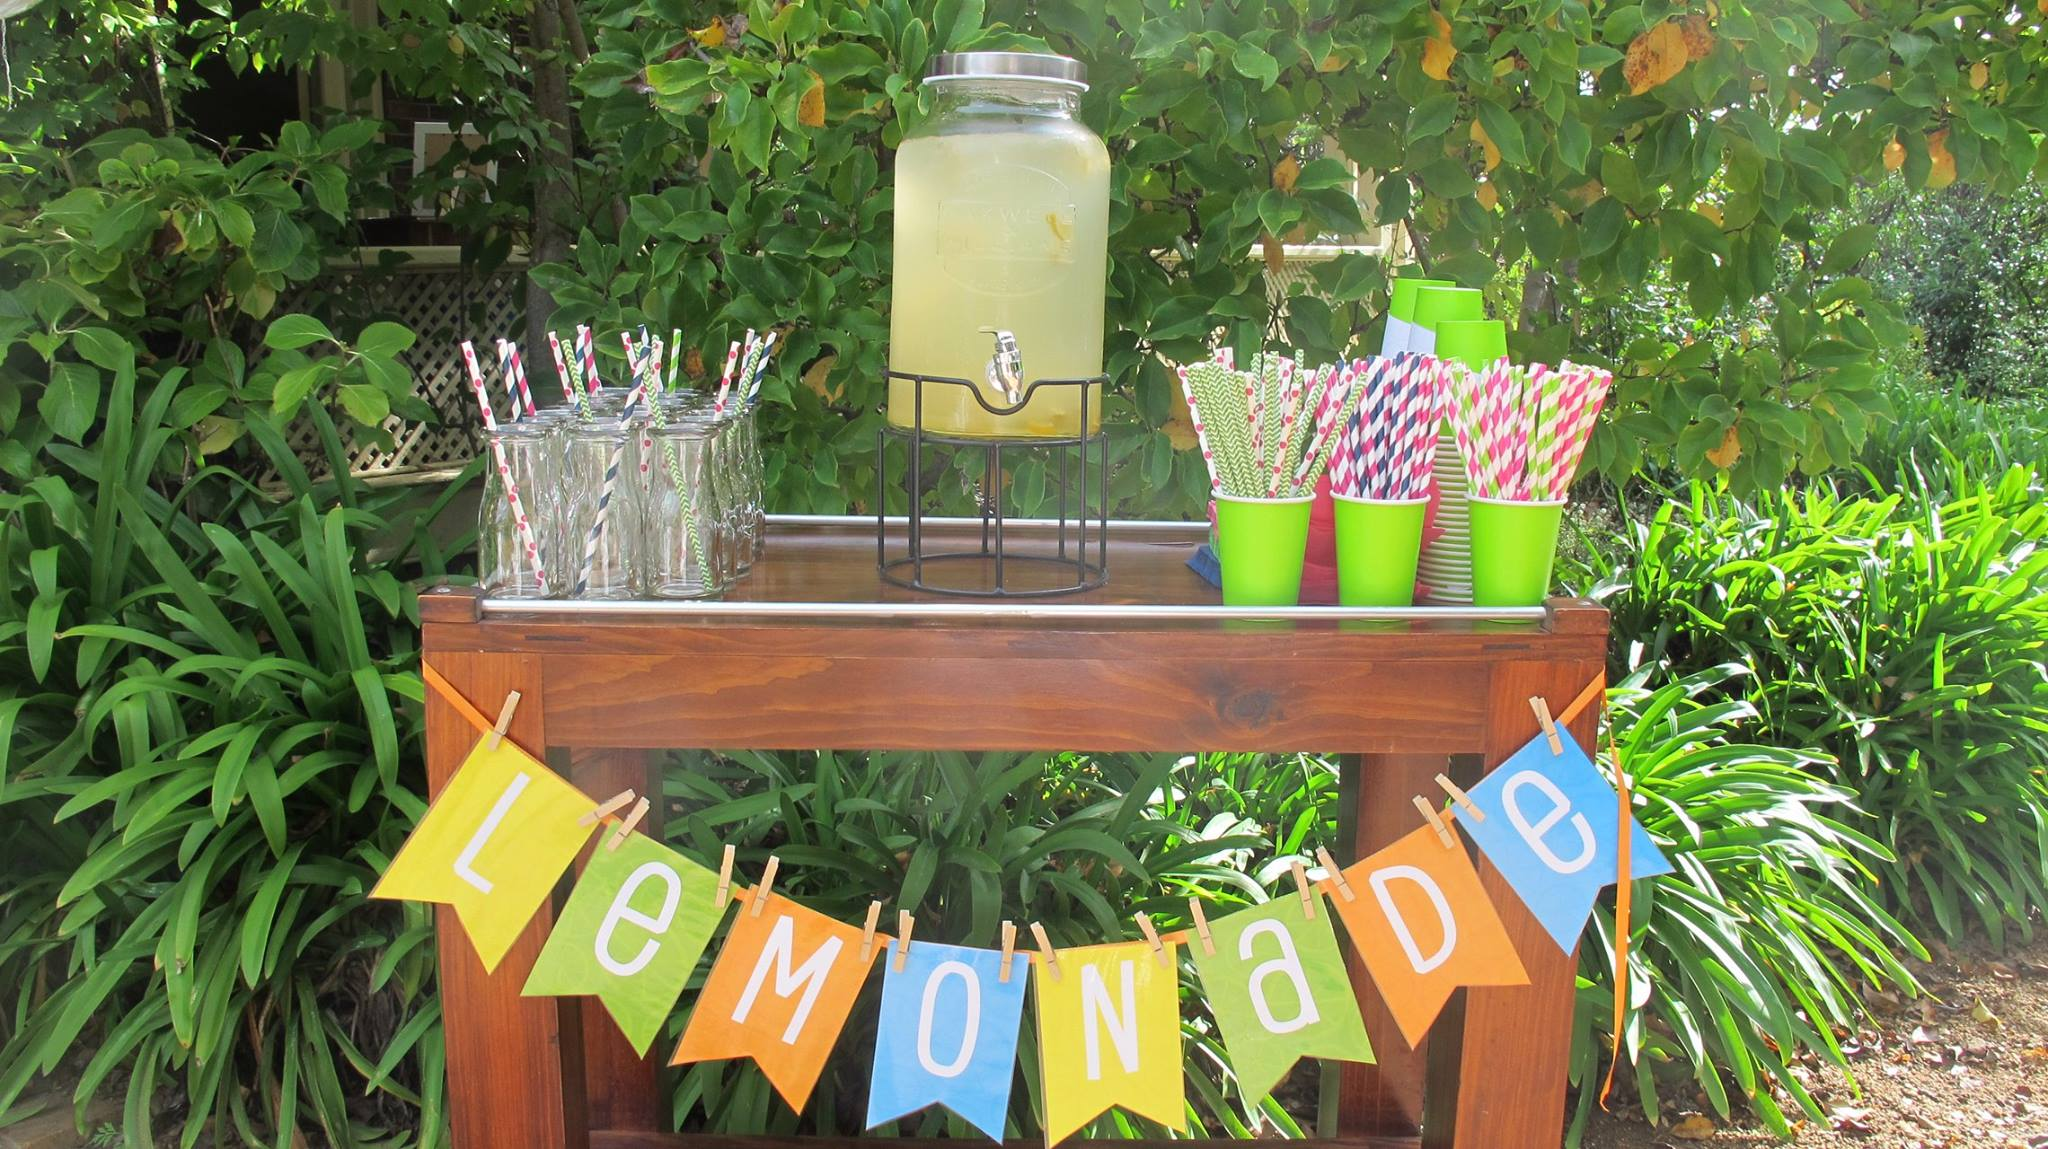 Upon arrival, guests were treated to Pimms & (homemade) lemonade.